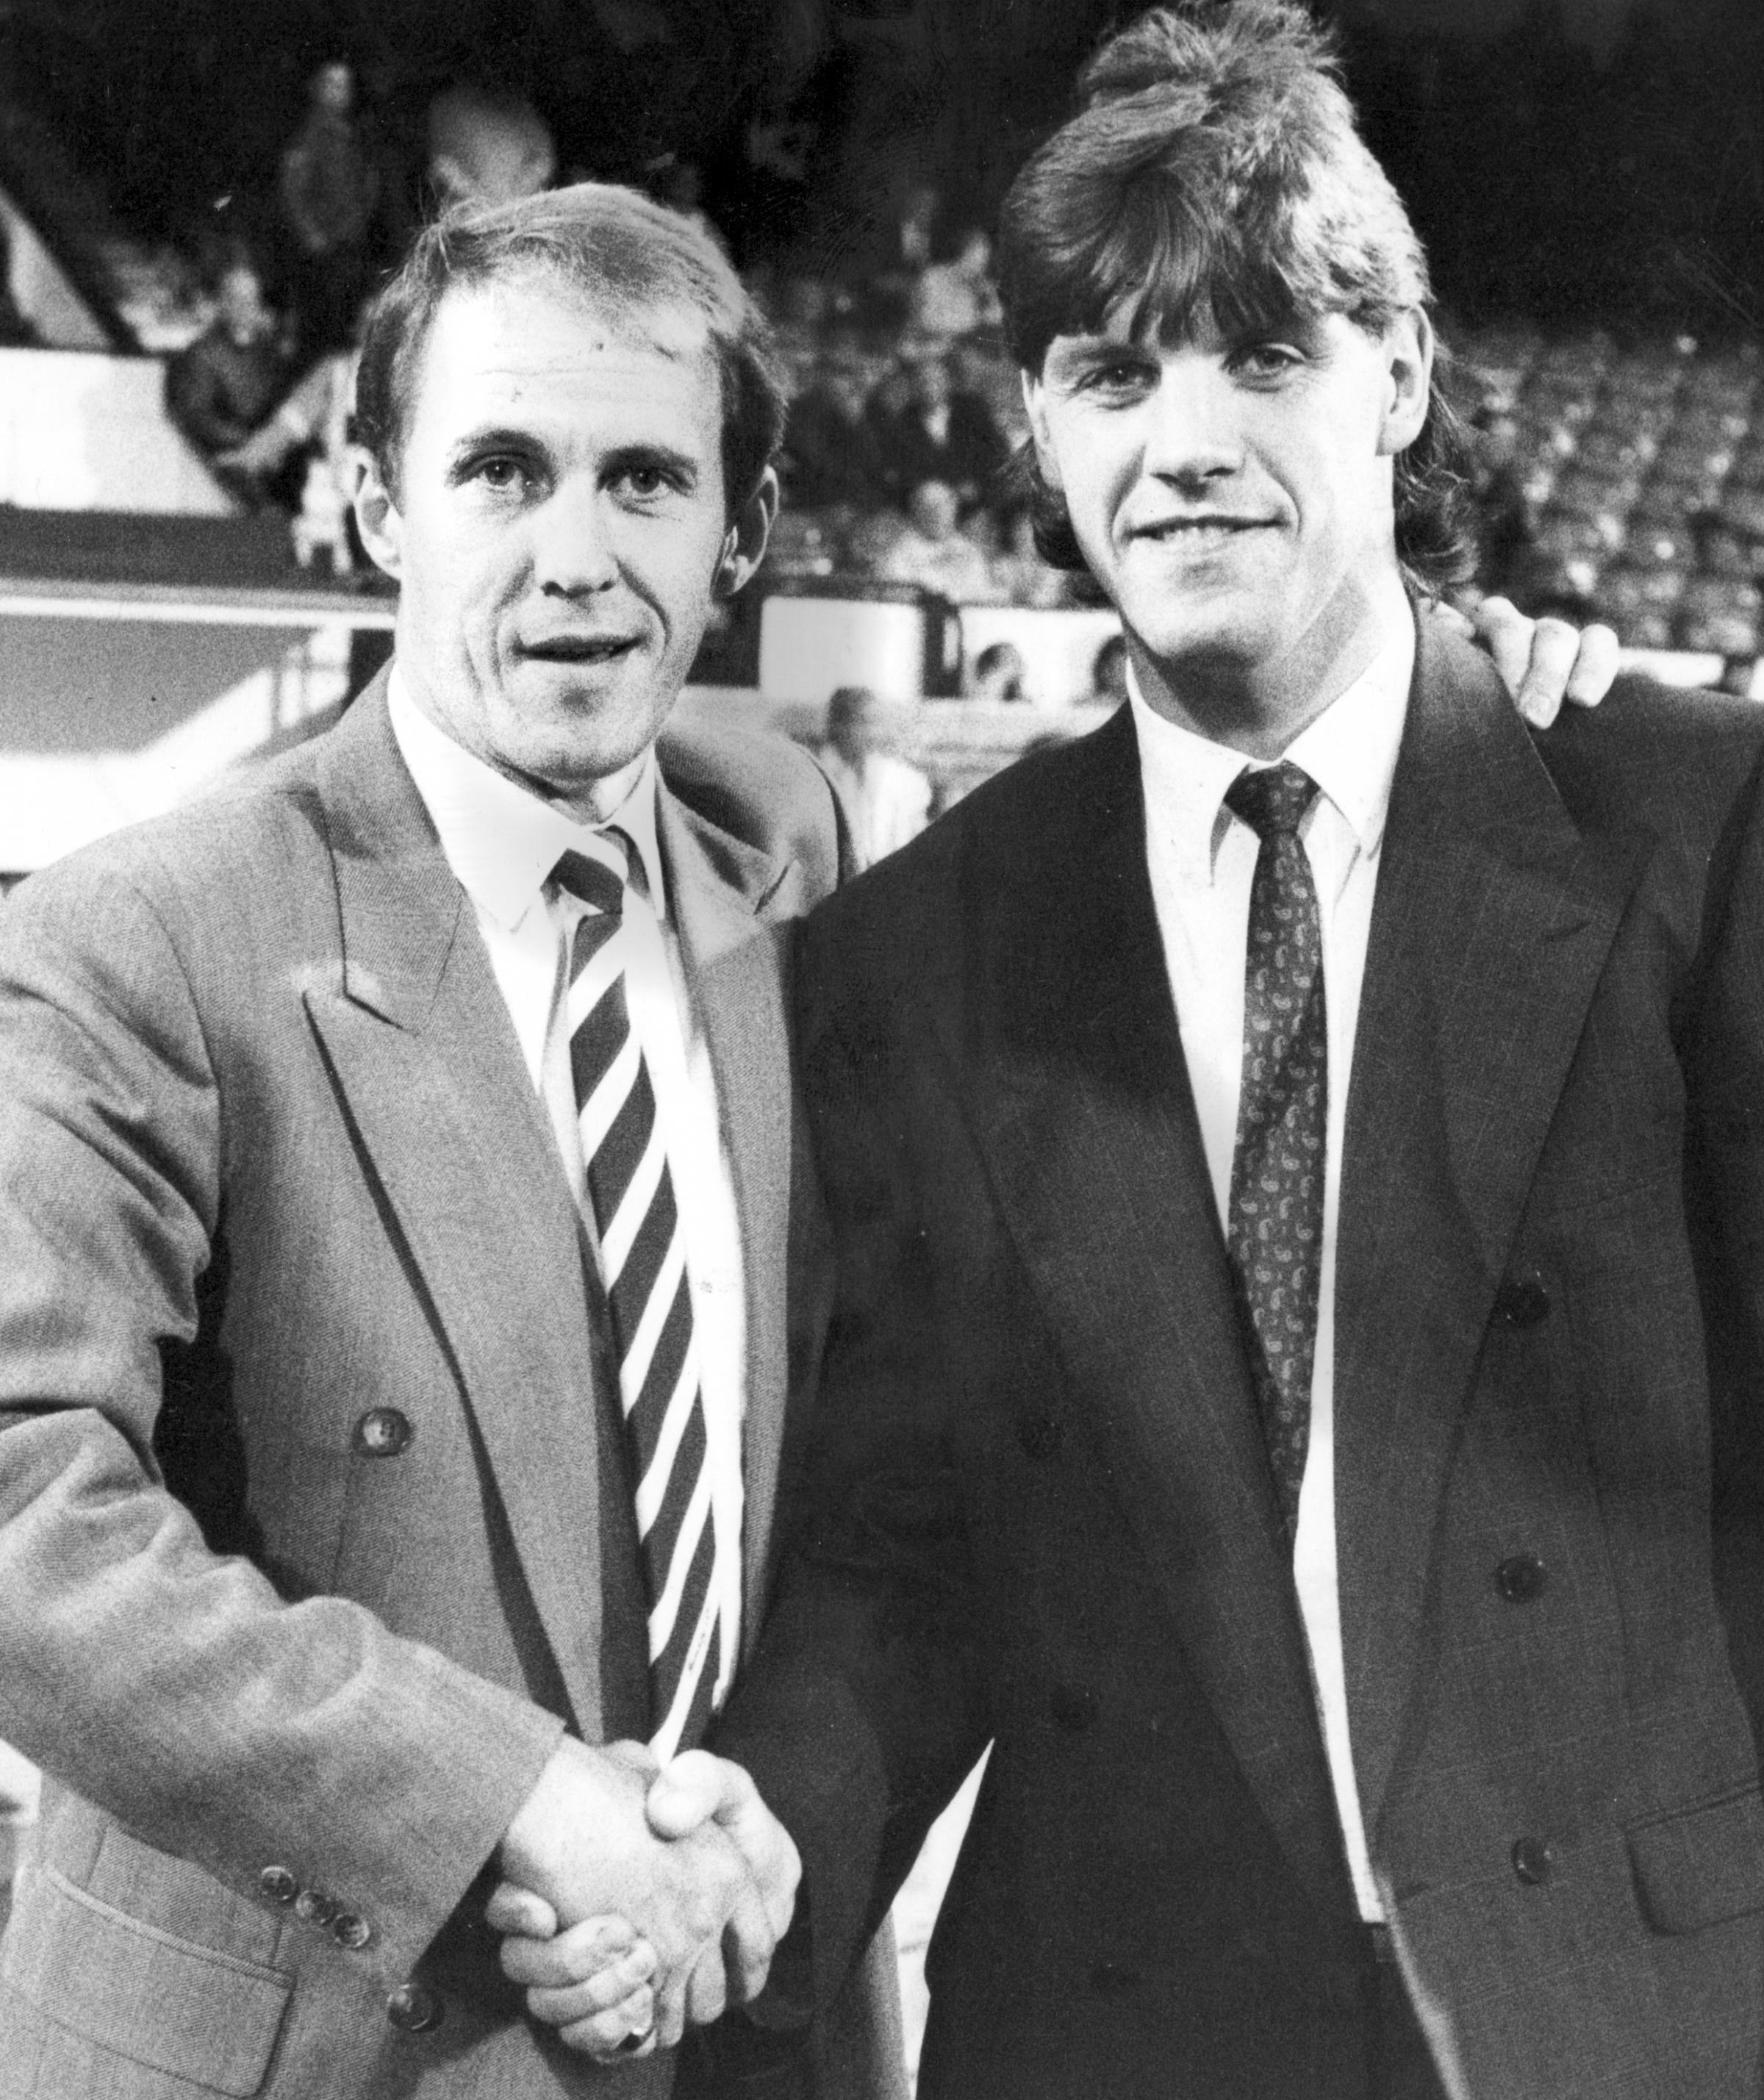 Then Bolton Wanderers manager Phil Neal introduces Paul Comstive to the crowd at Burnden Park in 1989